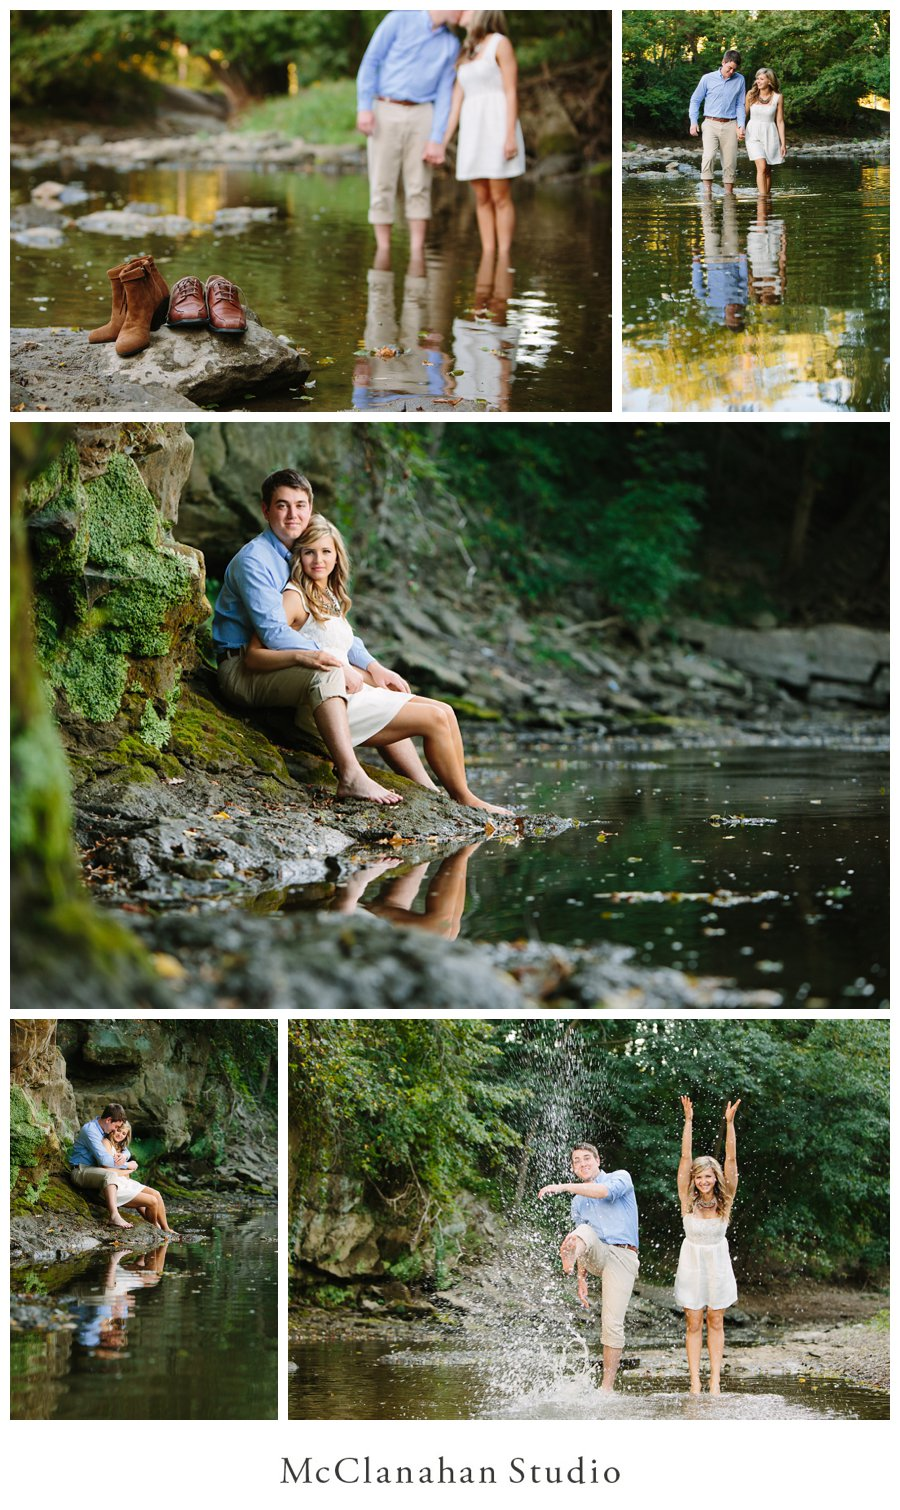 Quad Cities Engagement photo series in Duck Creek, wading in the shallows, cuddling on limestone ledges and splashing. Photos by husband/wife duo McClanahan Studio.